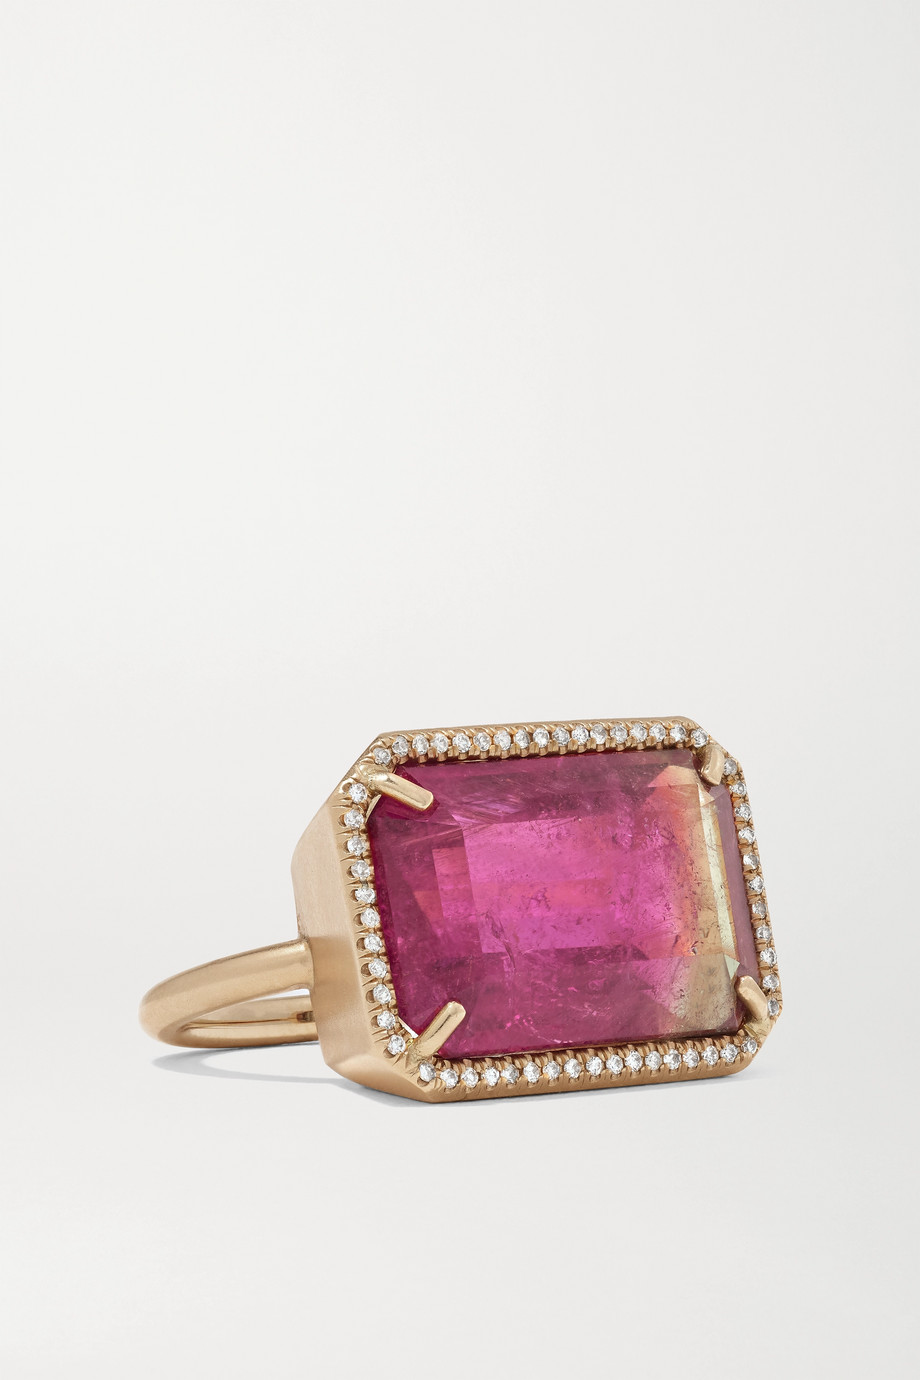 Irene Neuwirth Gemmy Gem 18-karat rose gold, tourmaline and diamond ring